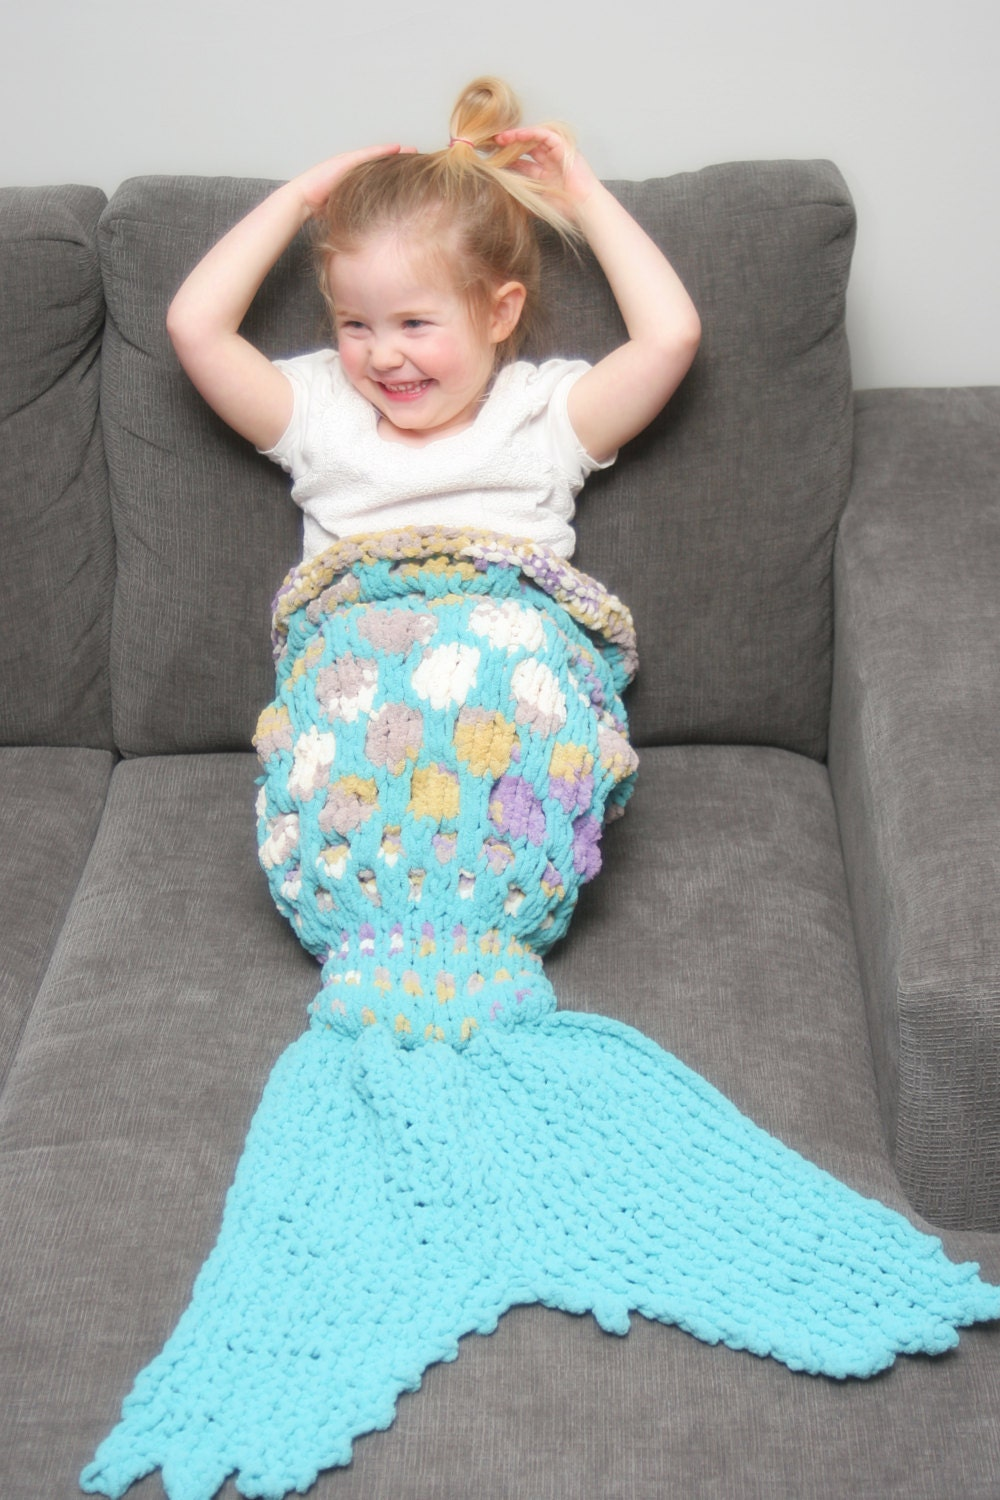 Knitting Patterns For Mermaid Tails : Knitting Instructions Mermaid Tail Mermaid Blanket Knit